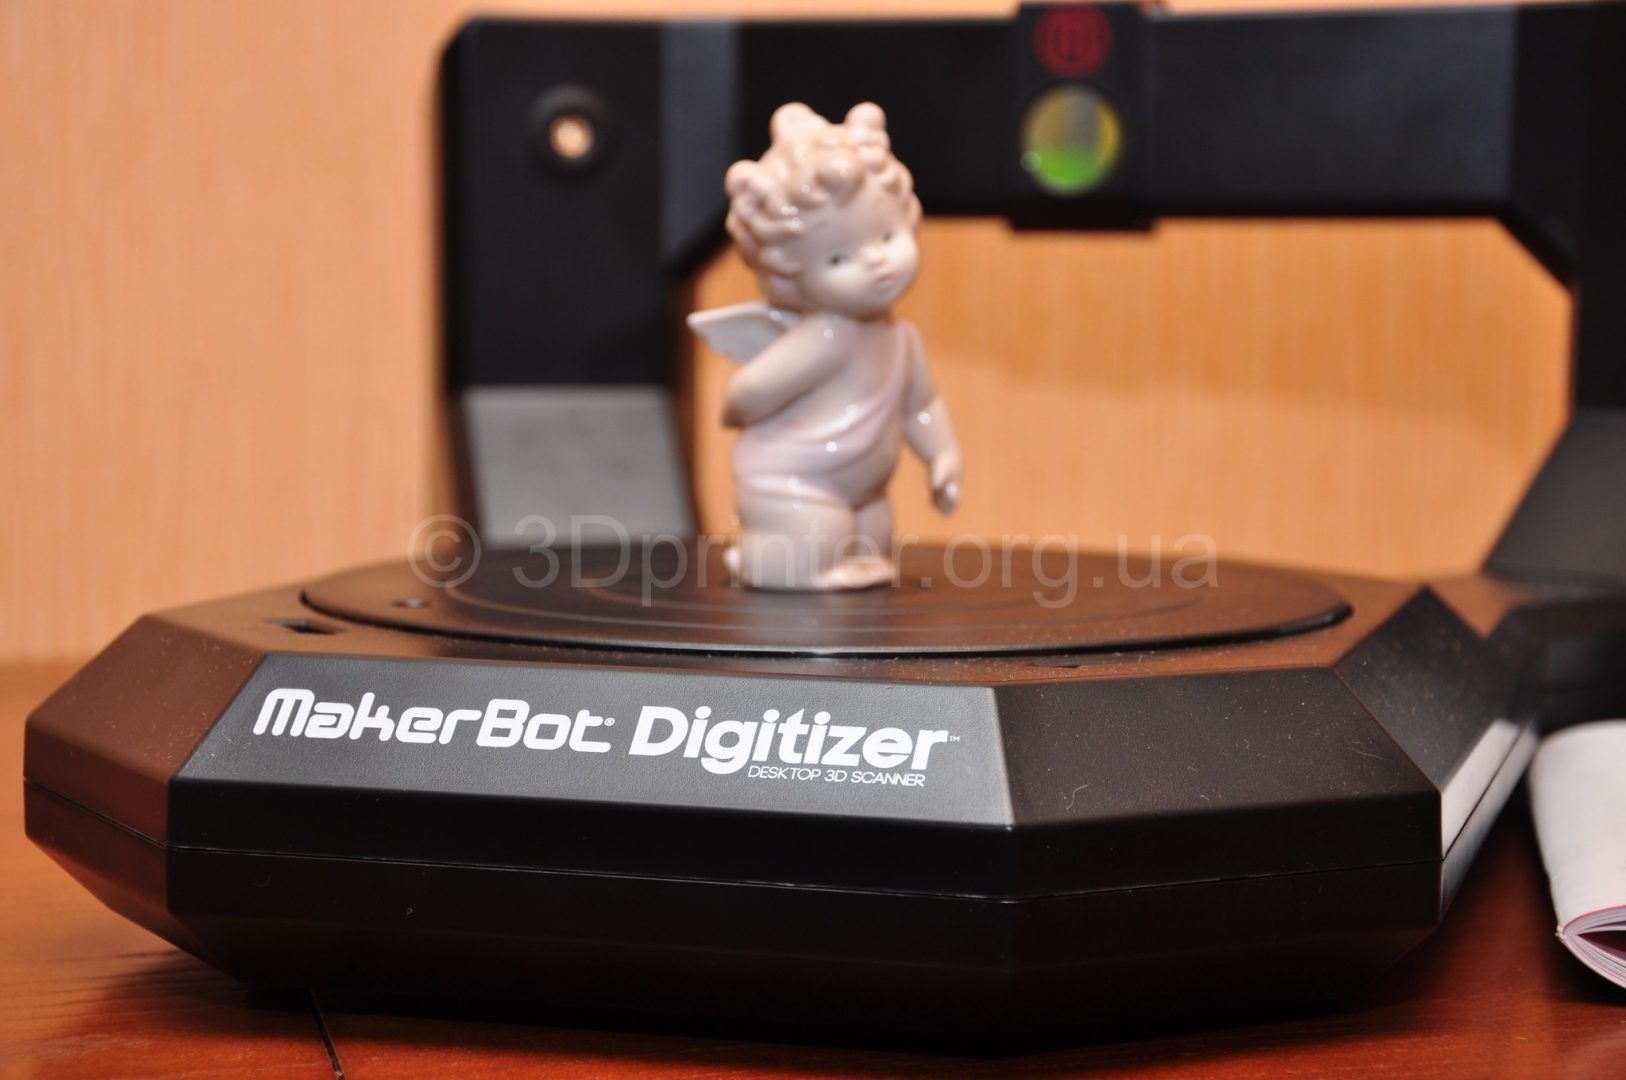 MakerBot Digitizer Desktop